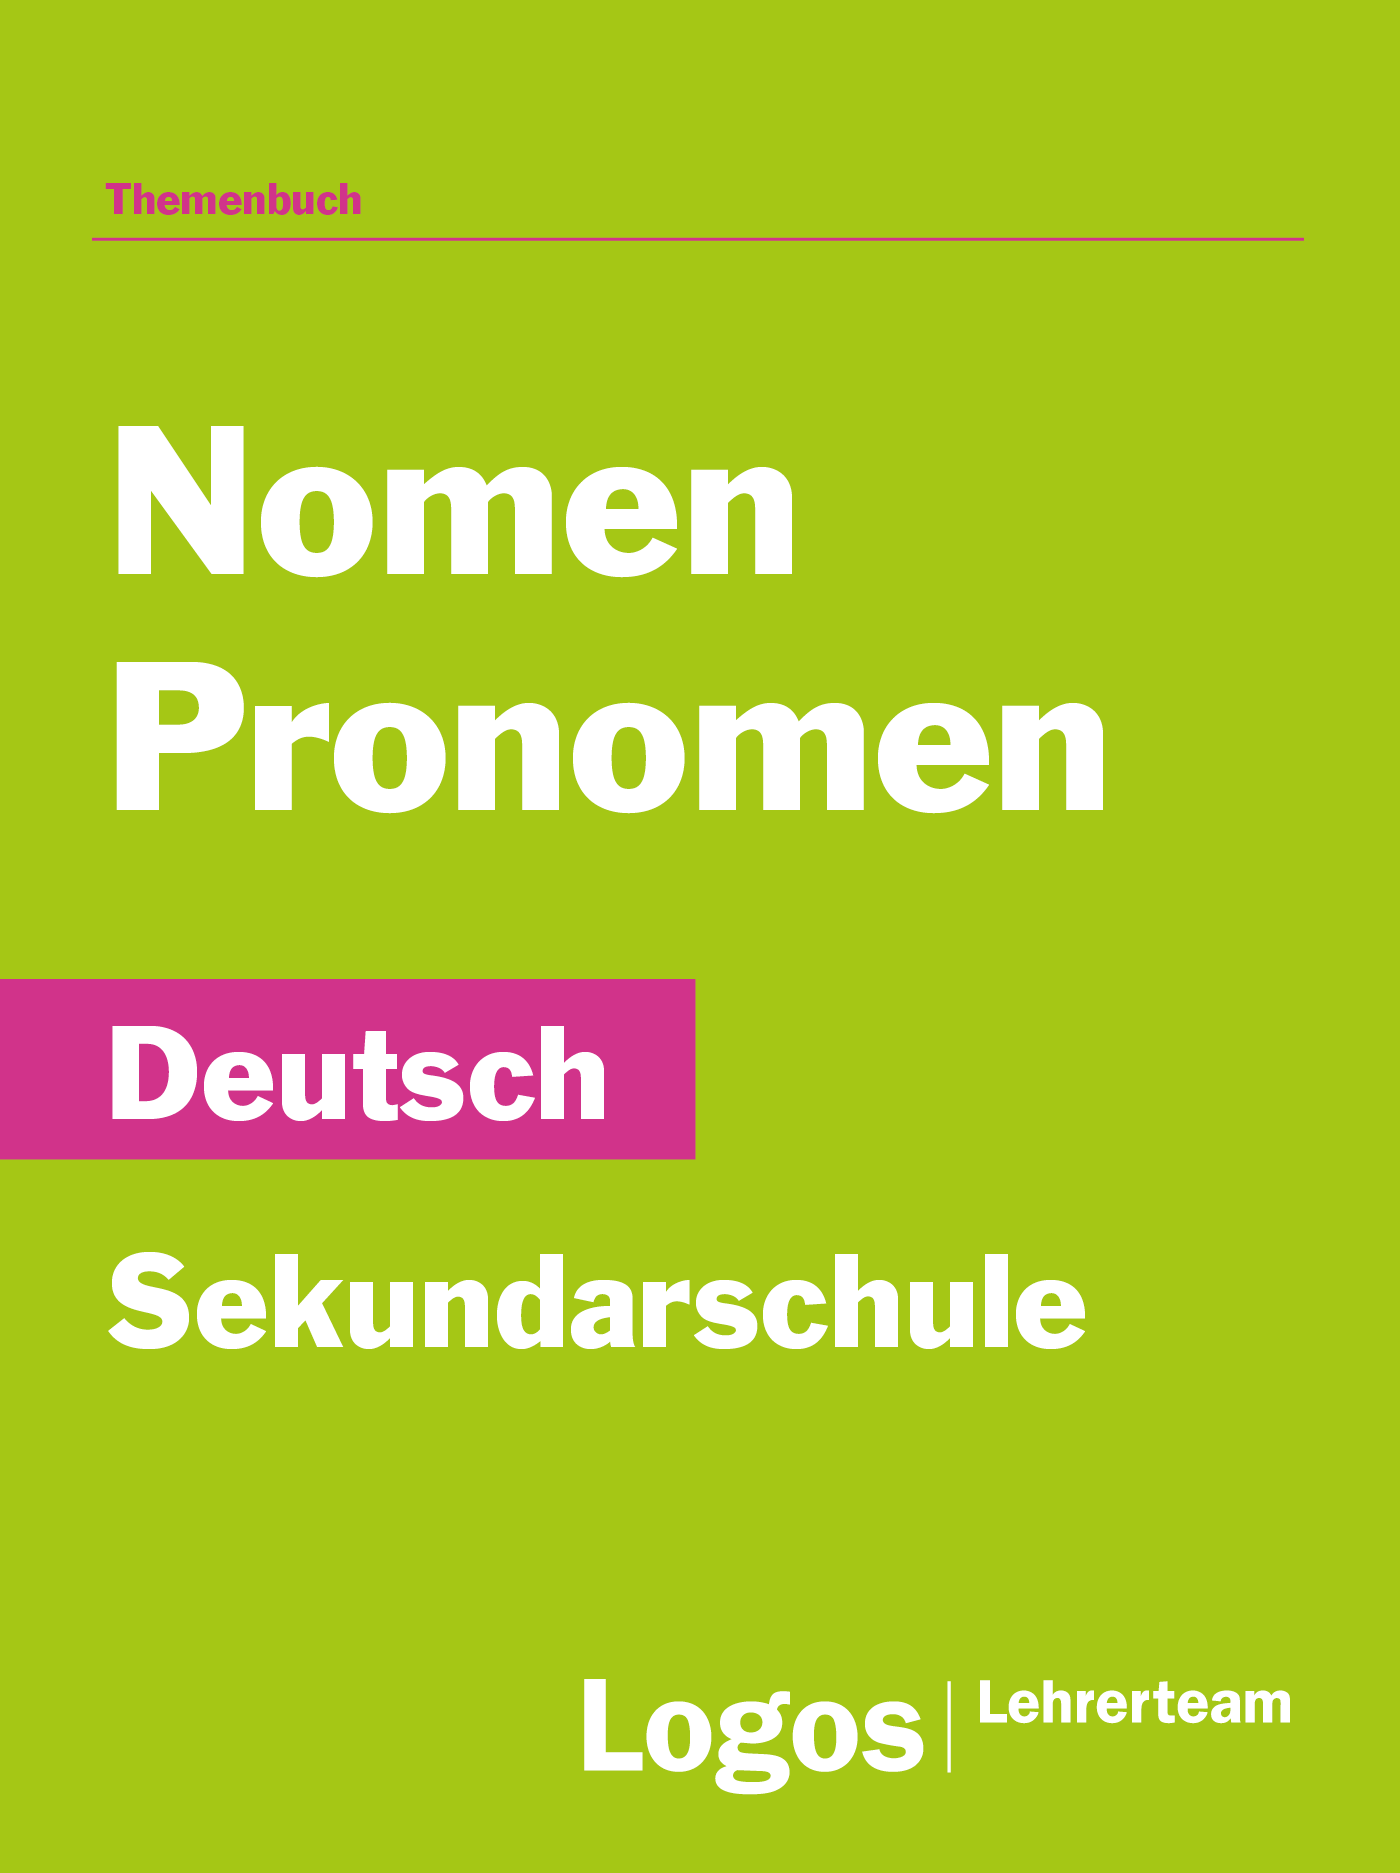 Deutsch Nomen und Pronomen - Sekundar